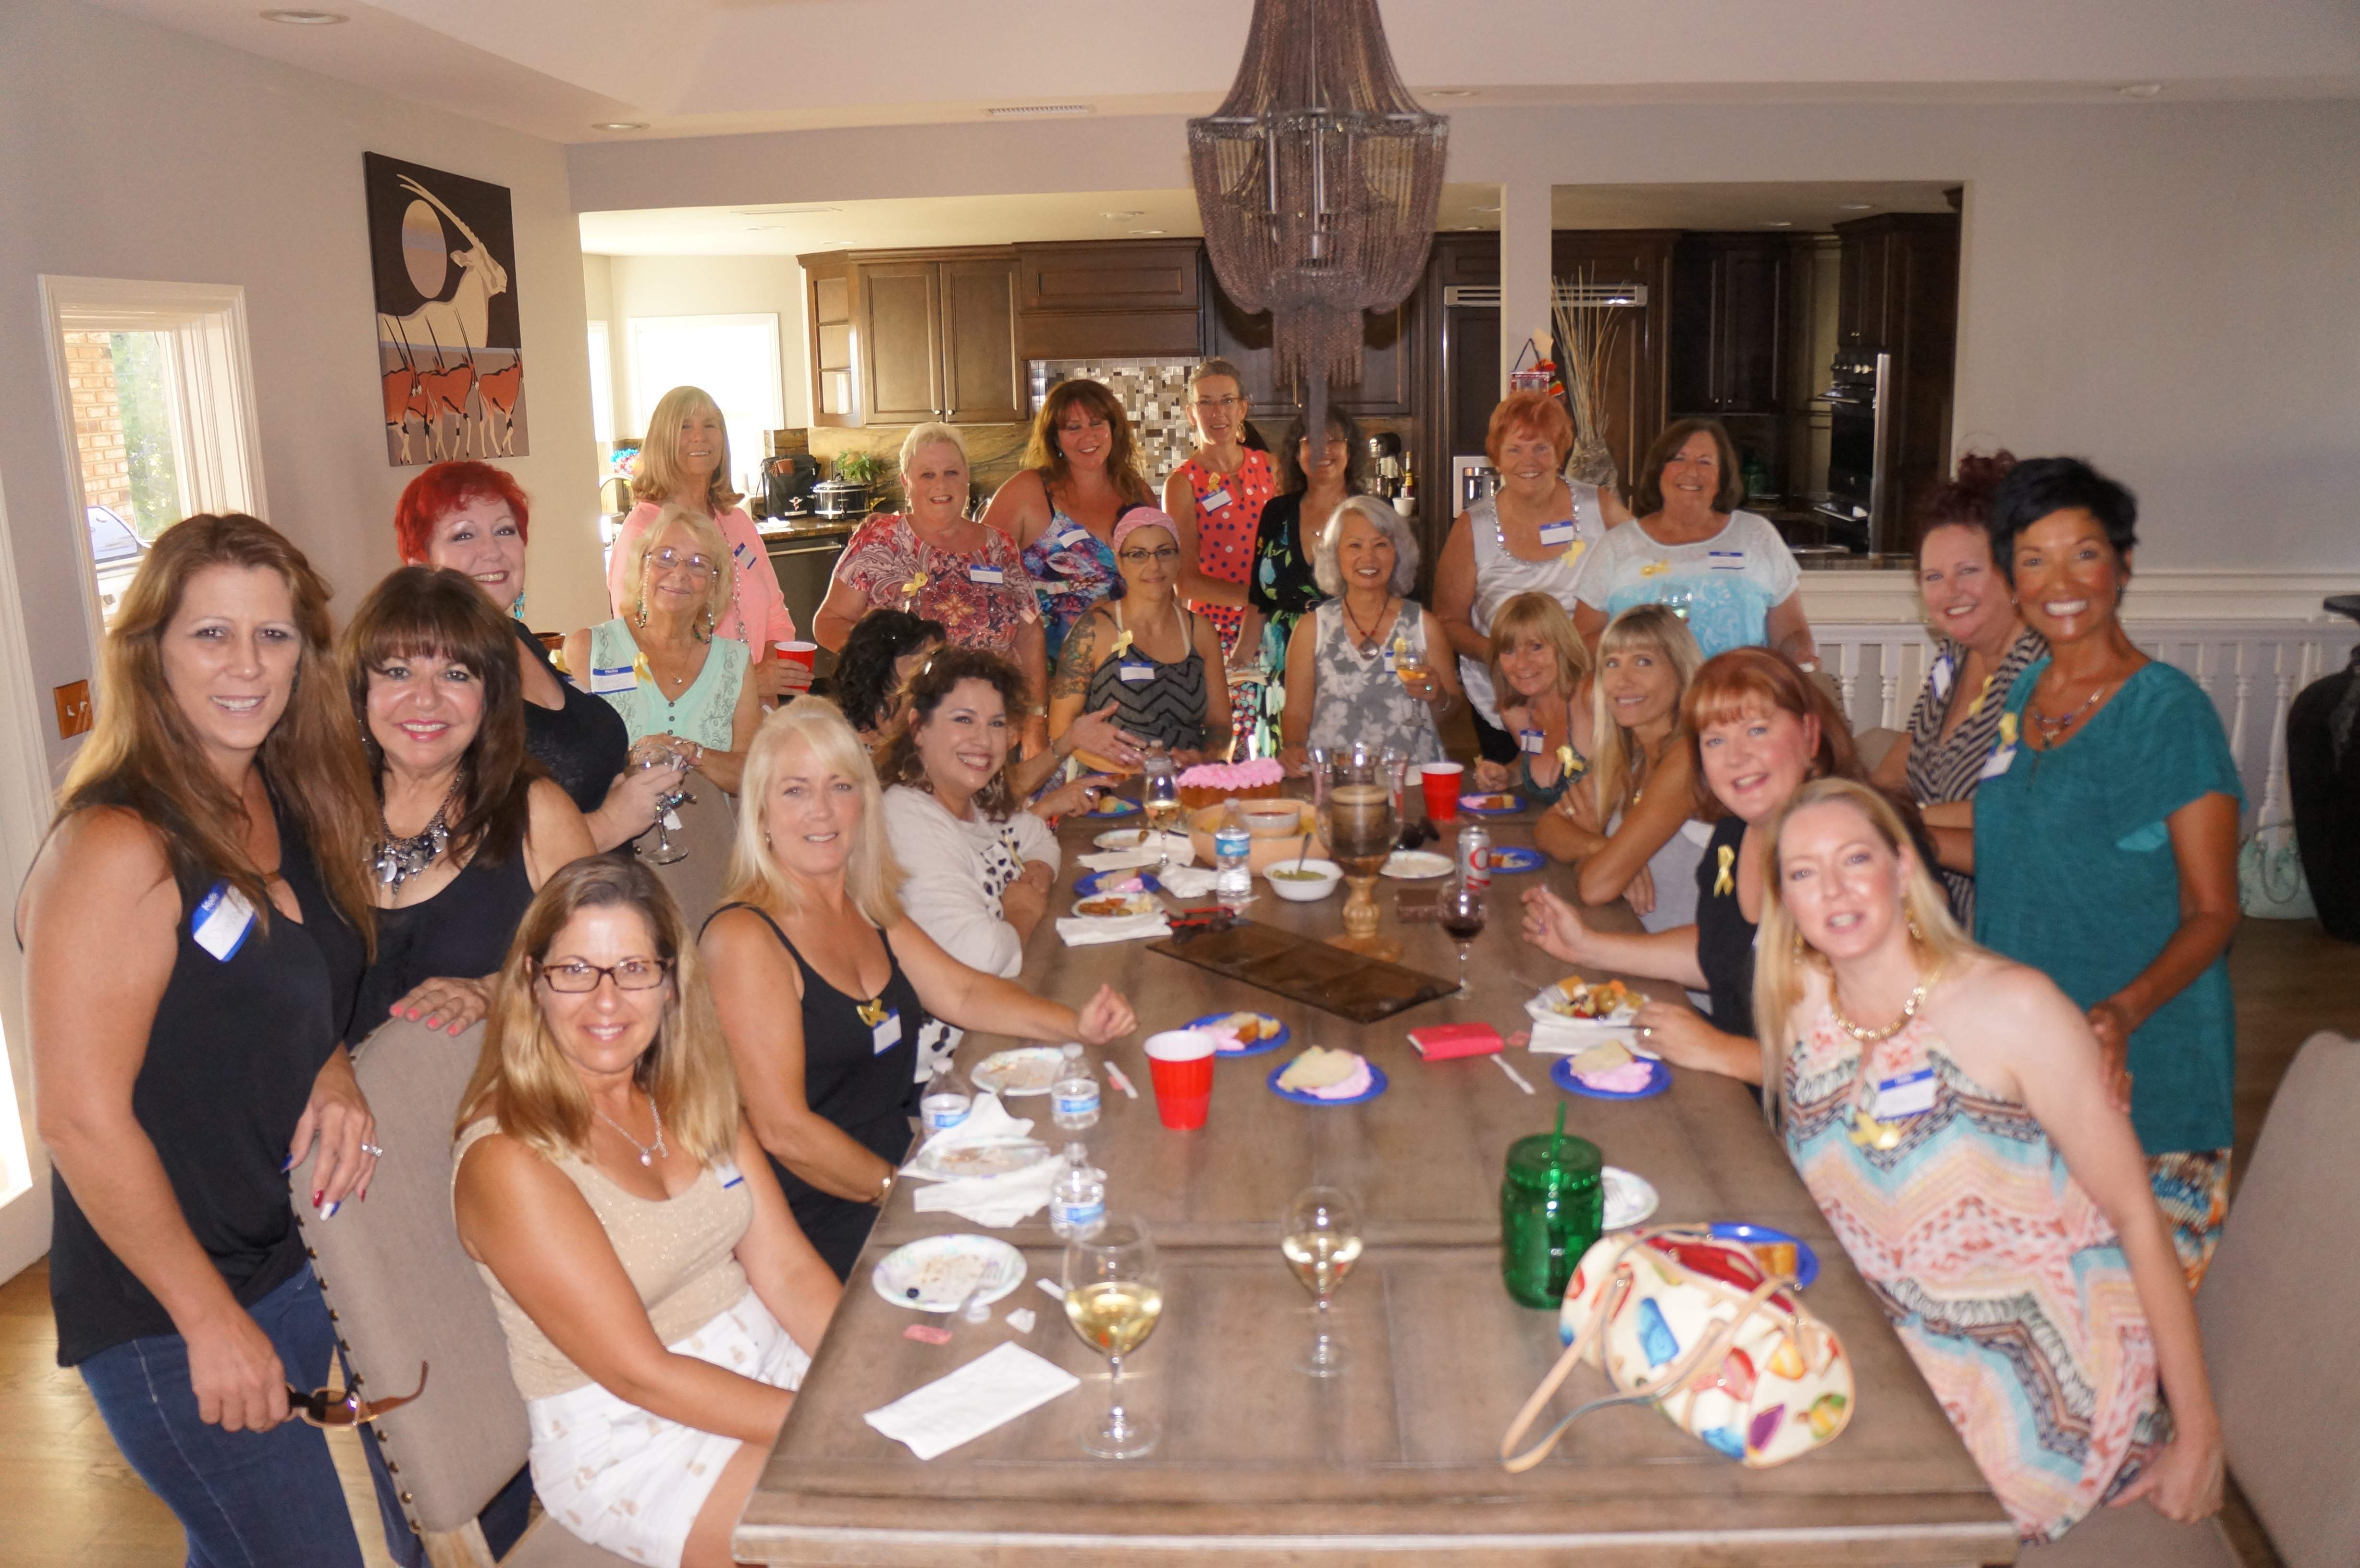 'Dining with Friends' dinner raises $400 for Baine family